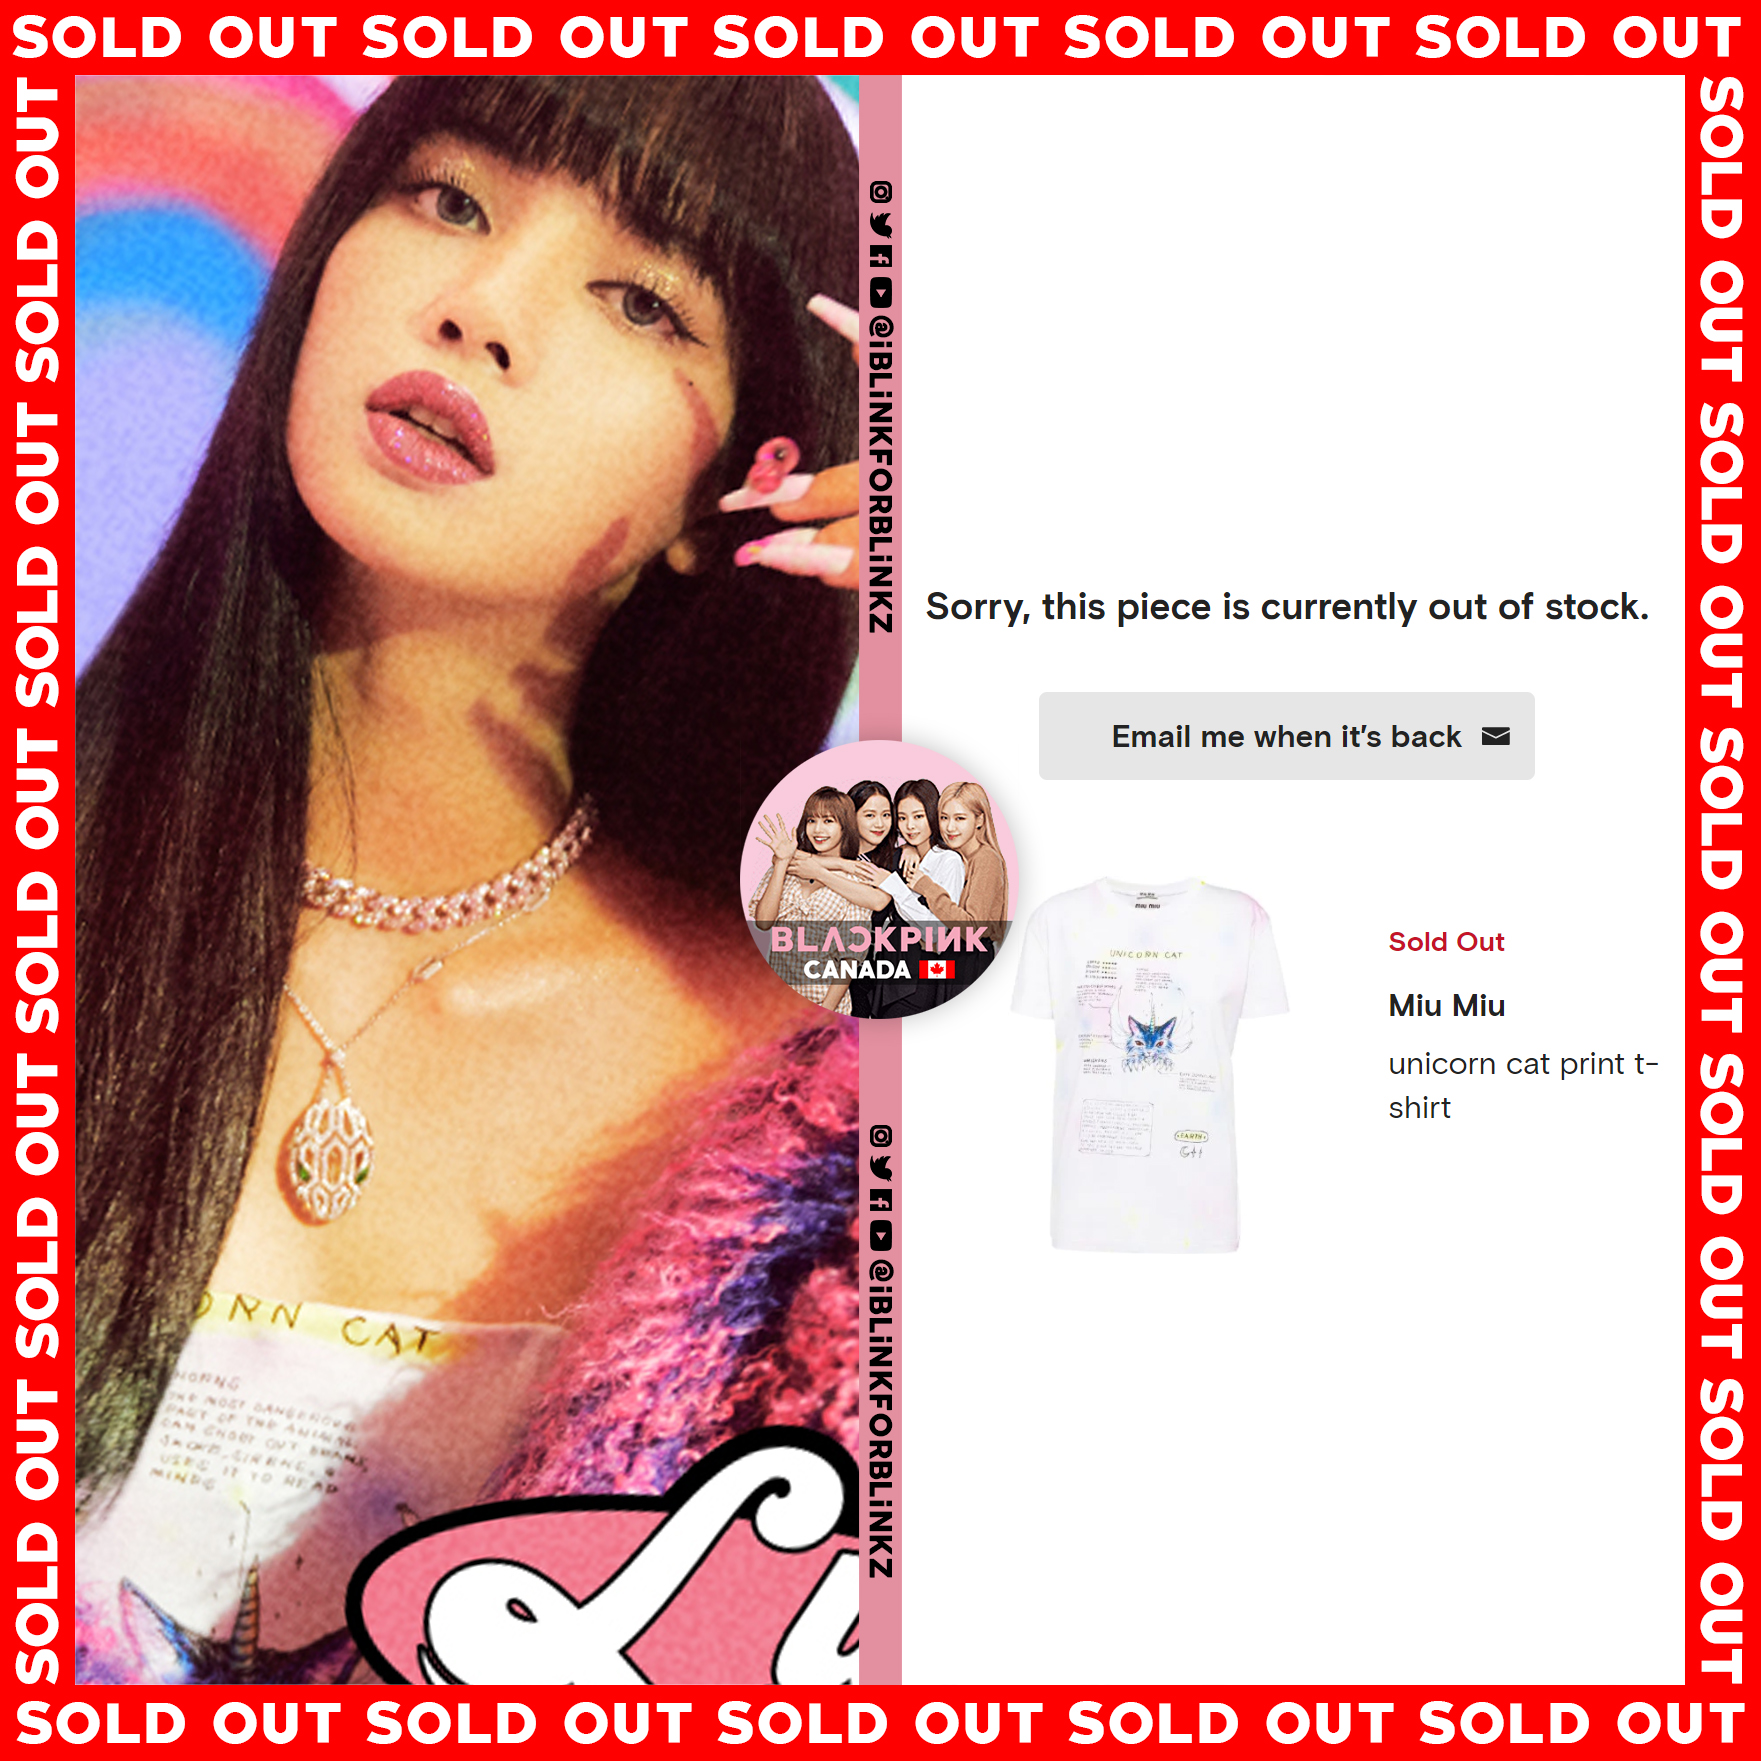 blackpink lisa sold out ice cream 1